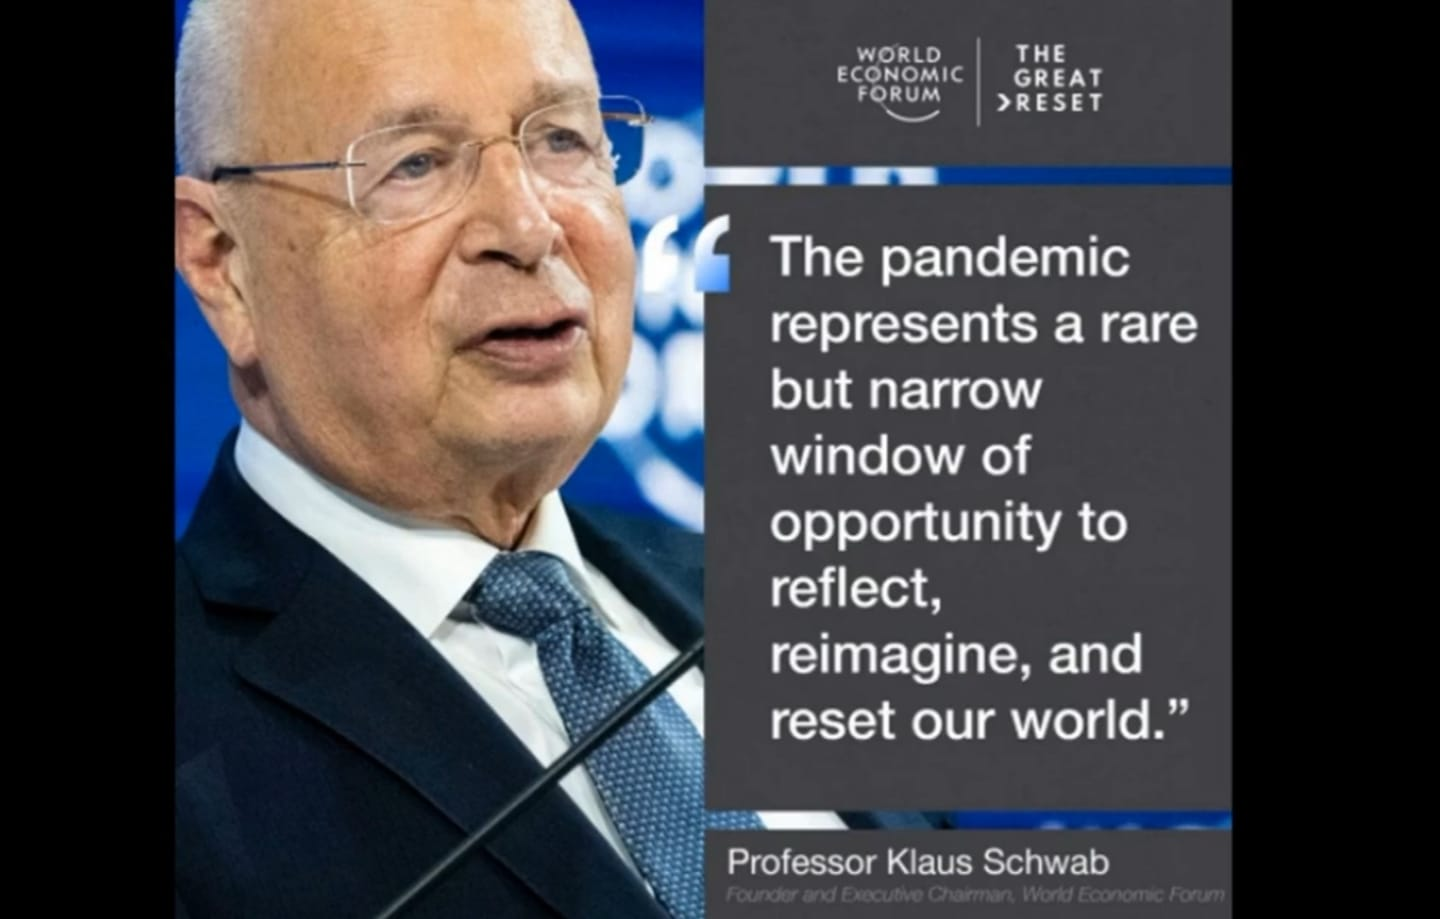 Klaus Schwab -founder+exec.chairMn World Economic Forum-The pandemic represents a rare but narrow window of opportunity to reflect, reimagine, + reset our world.